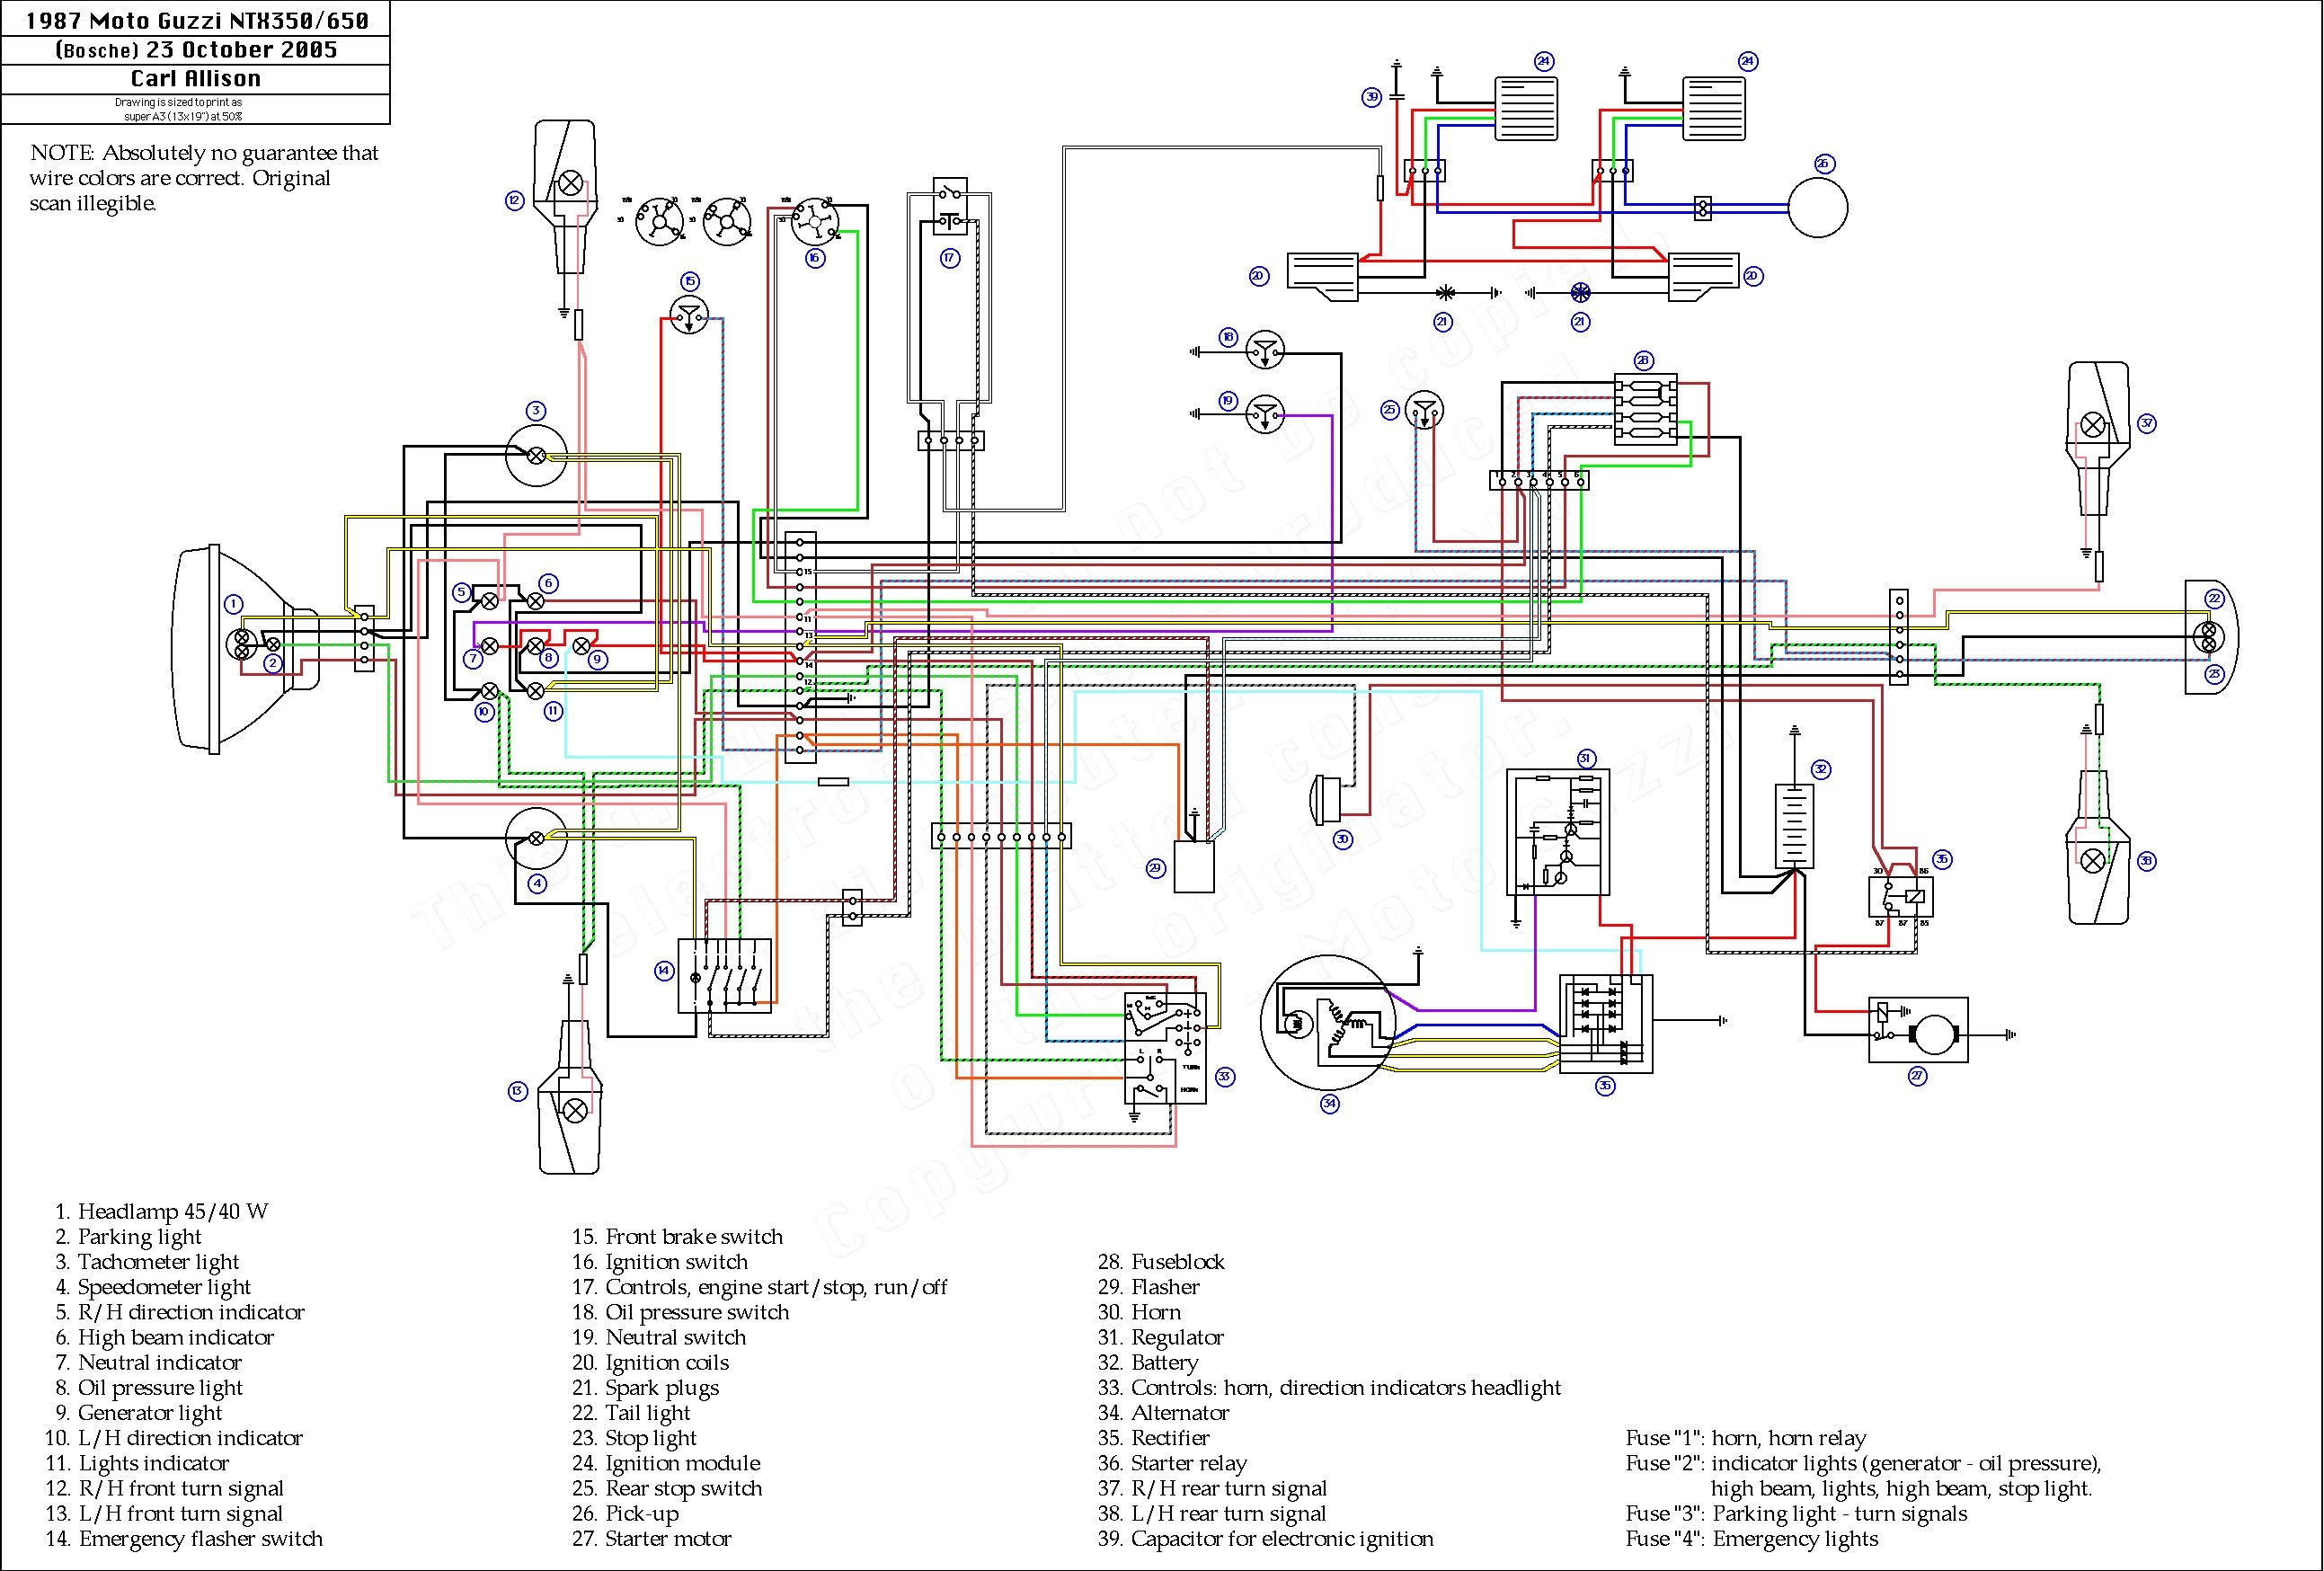 Cat 5 Cable Wiring Diagram Yamaha Warrior 350 Fender Fideli Tron Wire Diagram For Wiring Diagram Schematics